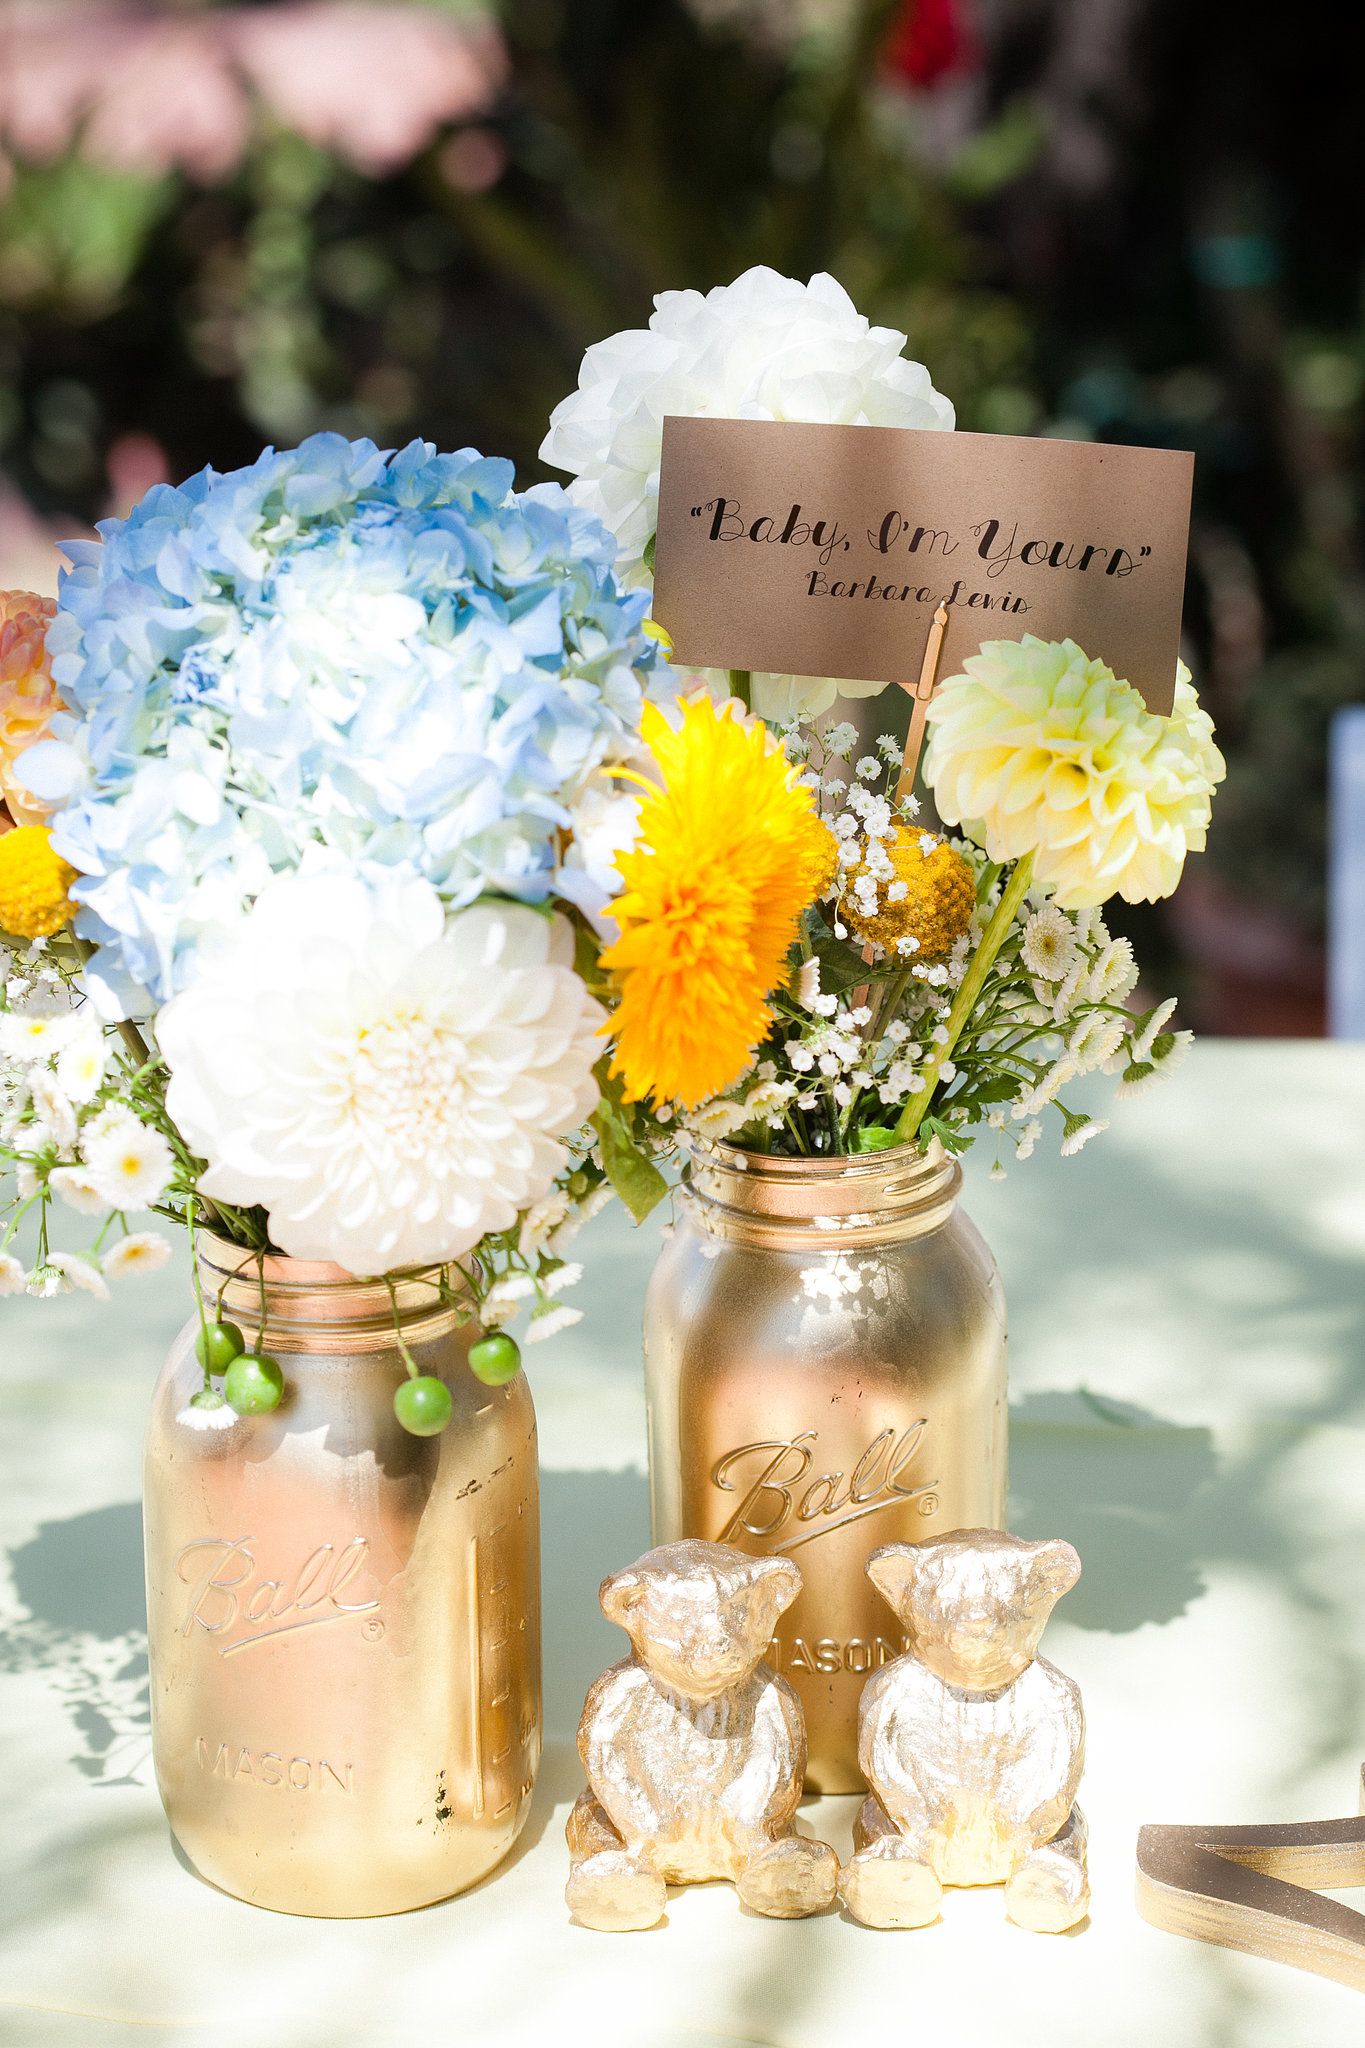 "Did you take on any DIY projects? ""We went spray-paint crazy. Mason jars, table figurines, table name holders, you name it — I think Home Depot started to get suspicious. We also hand-drew hearts onto matchbooks and enlisted the bridal party to tie them to sparklers, which we placed at each table setting for guests to light later in the evening. Chanti designed the menus and itineraries, and we printed them out at FedEx, where we took advantage of the sheet cutter (not something I would recommend when you're short on time!). For favors, we bought miniature packets, which we decorated with cute kitten stamps (we have a cat hashtag on Instagram, #danteandcomma, so it seemed appropriate). We filled them with flower seeds, wrote 'California Paw-pies' on the front, and sealed them with a Golden Gate bridge stamp on the back."" Photo by G Aranow Photography"